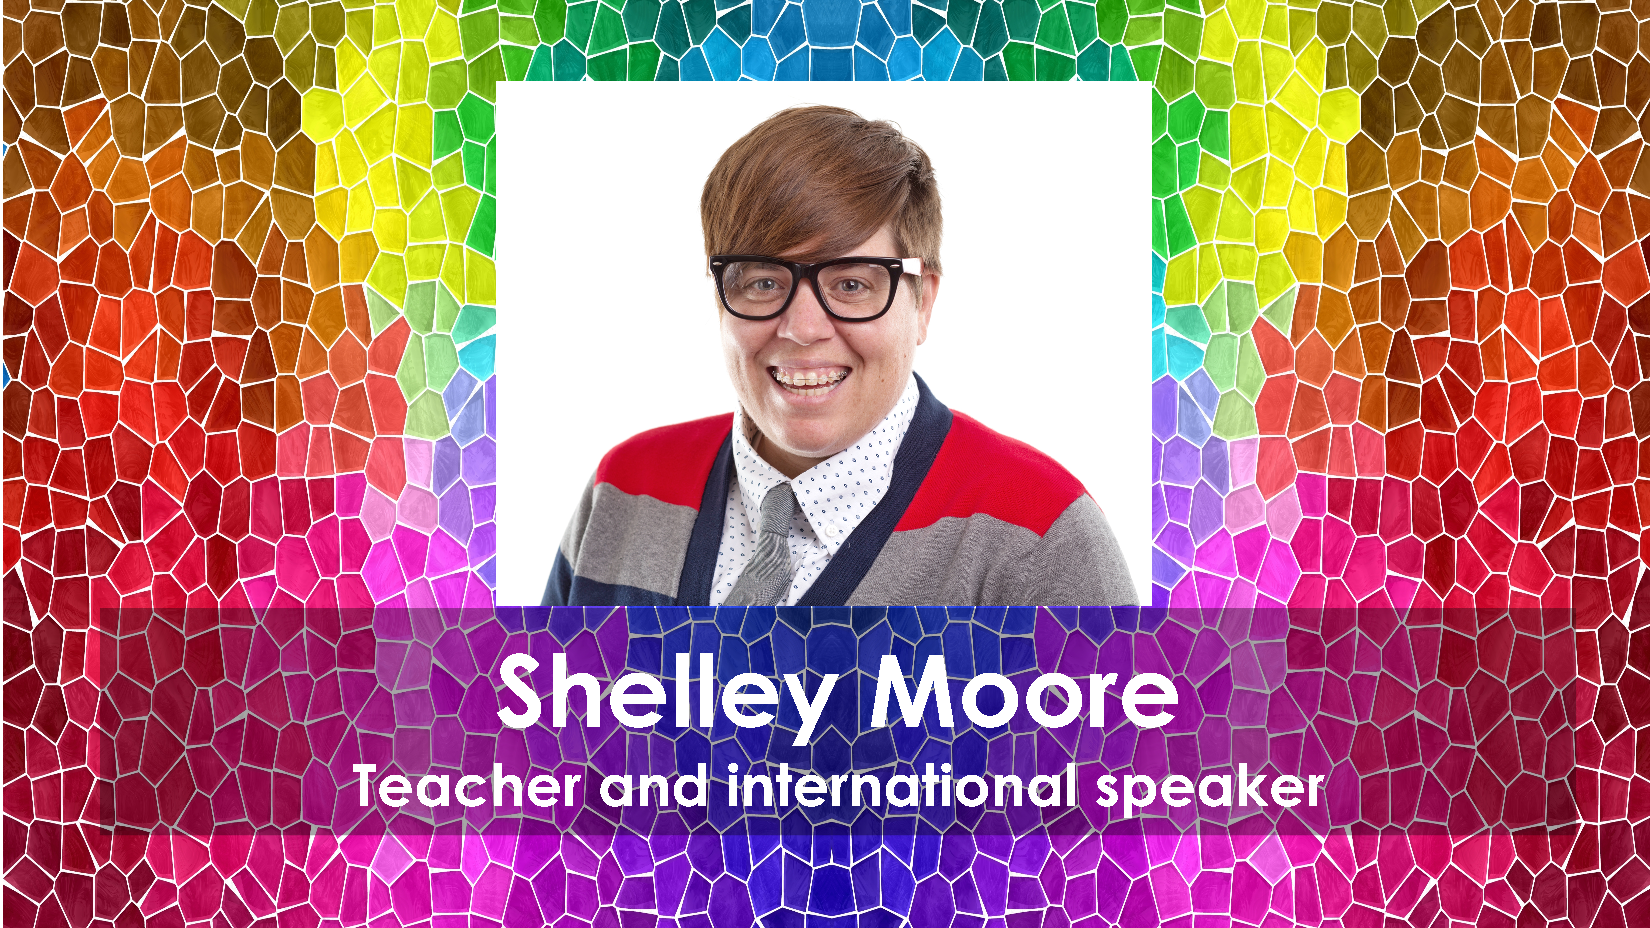 Shelley Moore conf for educators social v4